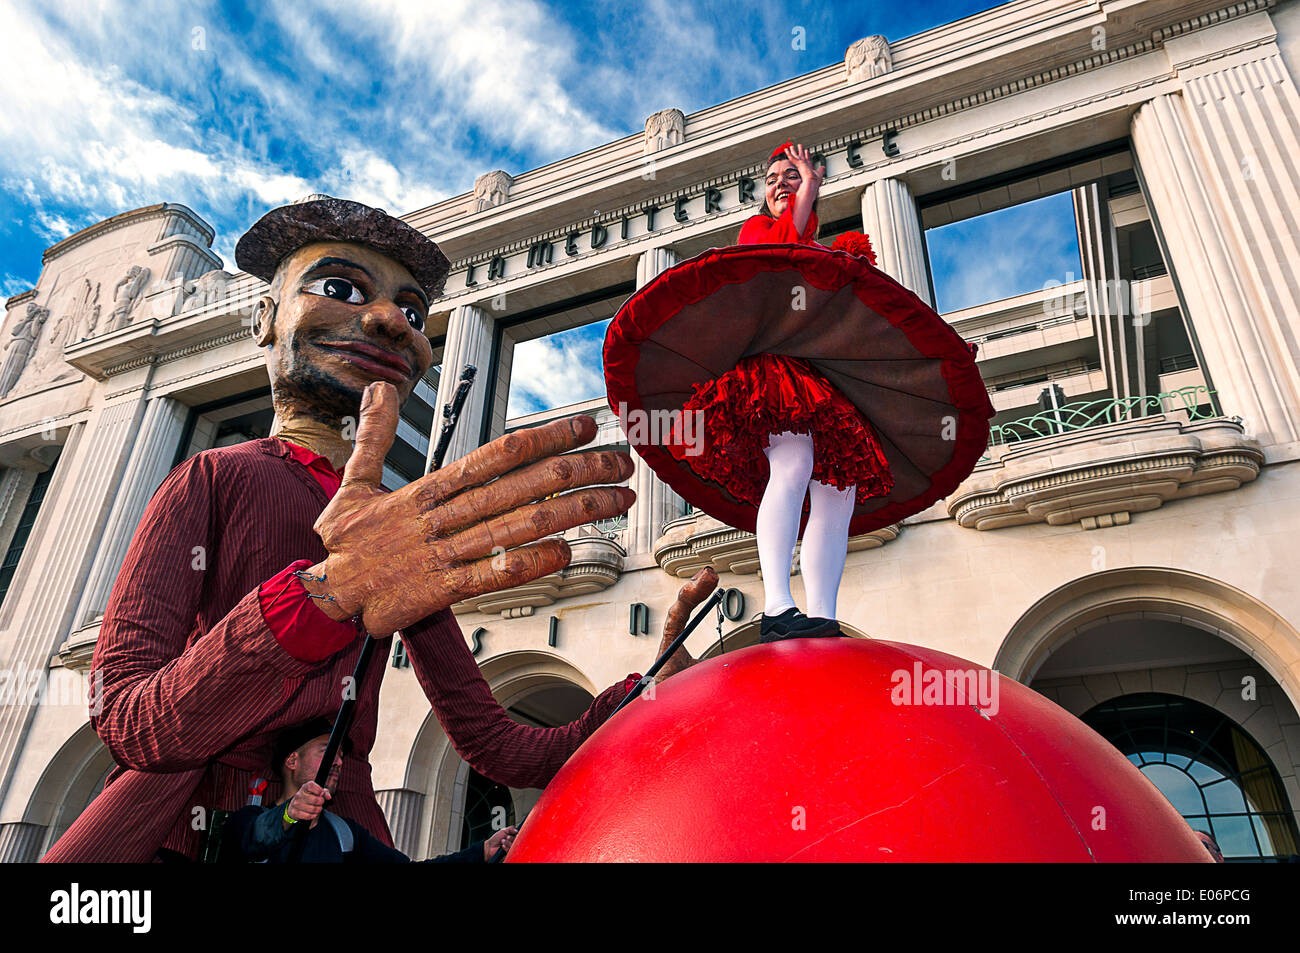 Europe, France, Alpes-Maritimes, Nice. Carnival. - Stock Image